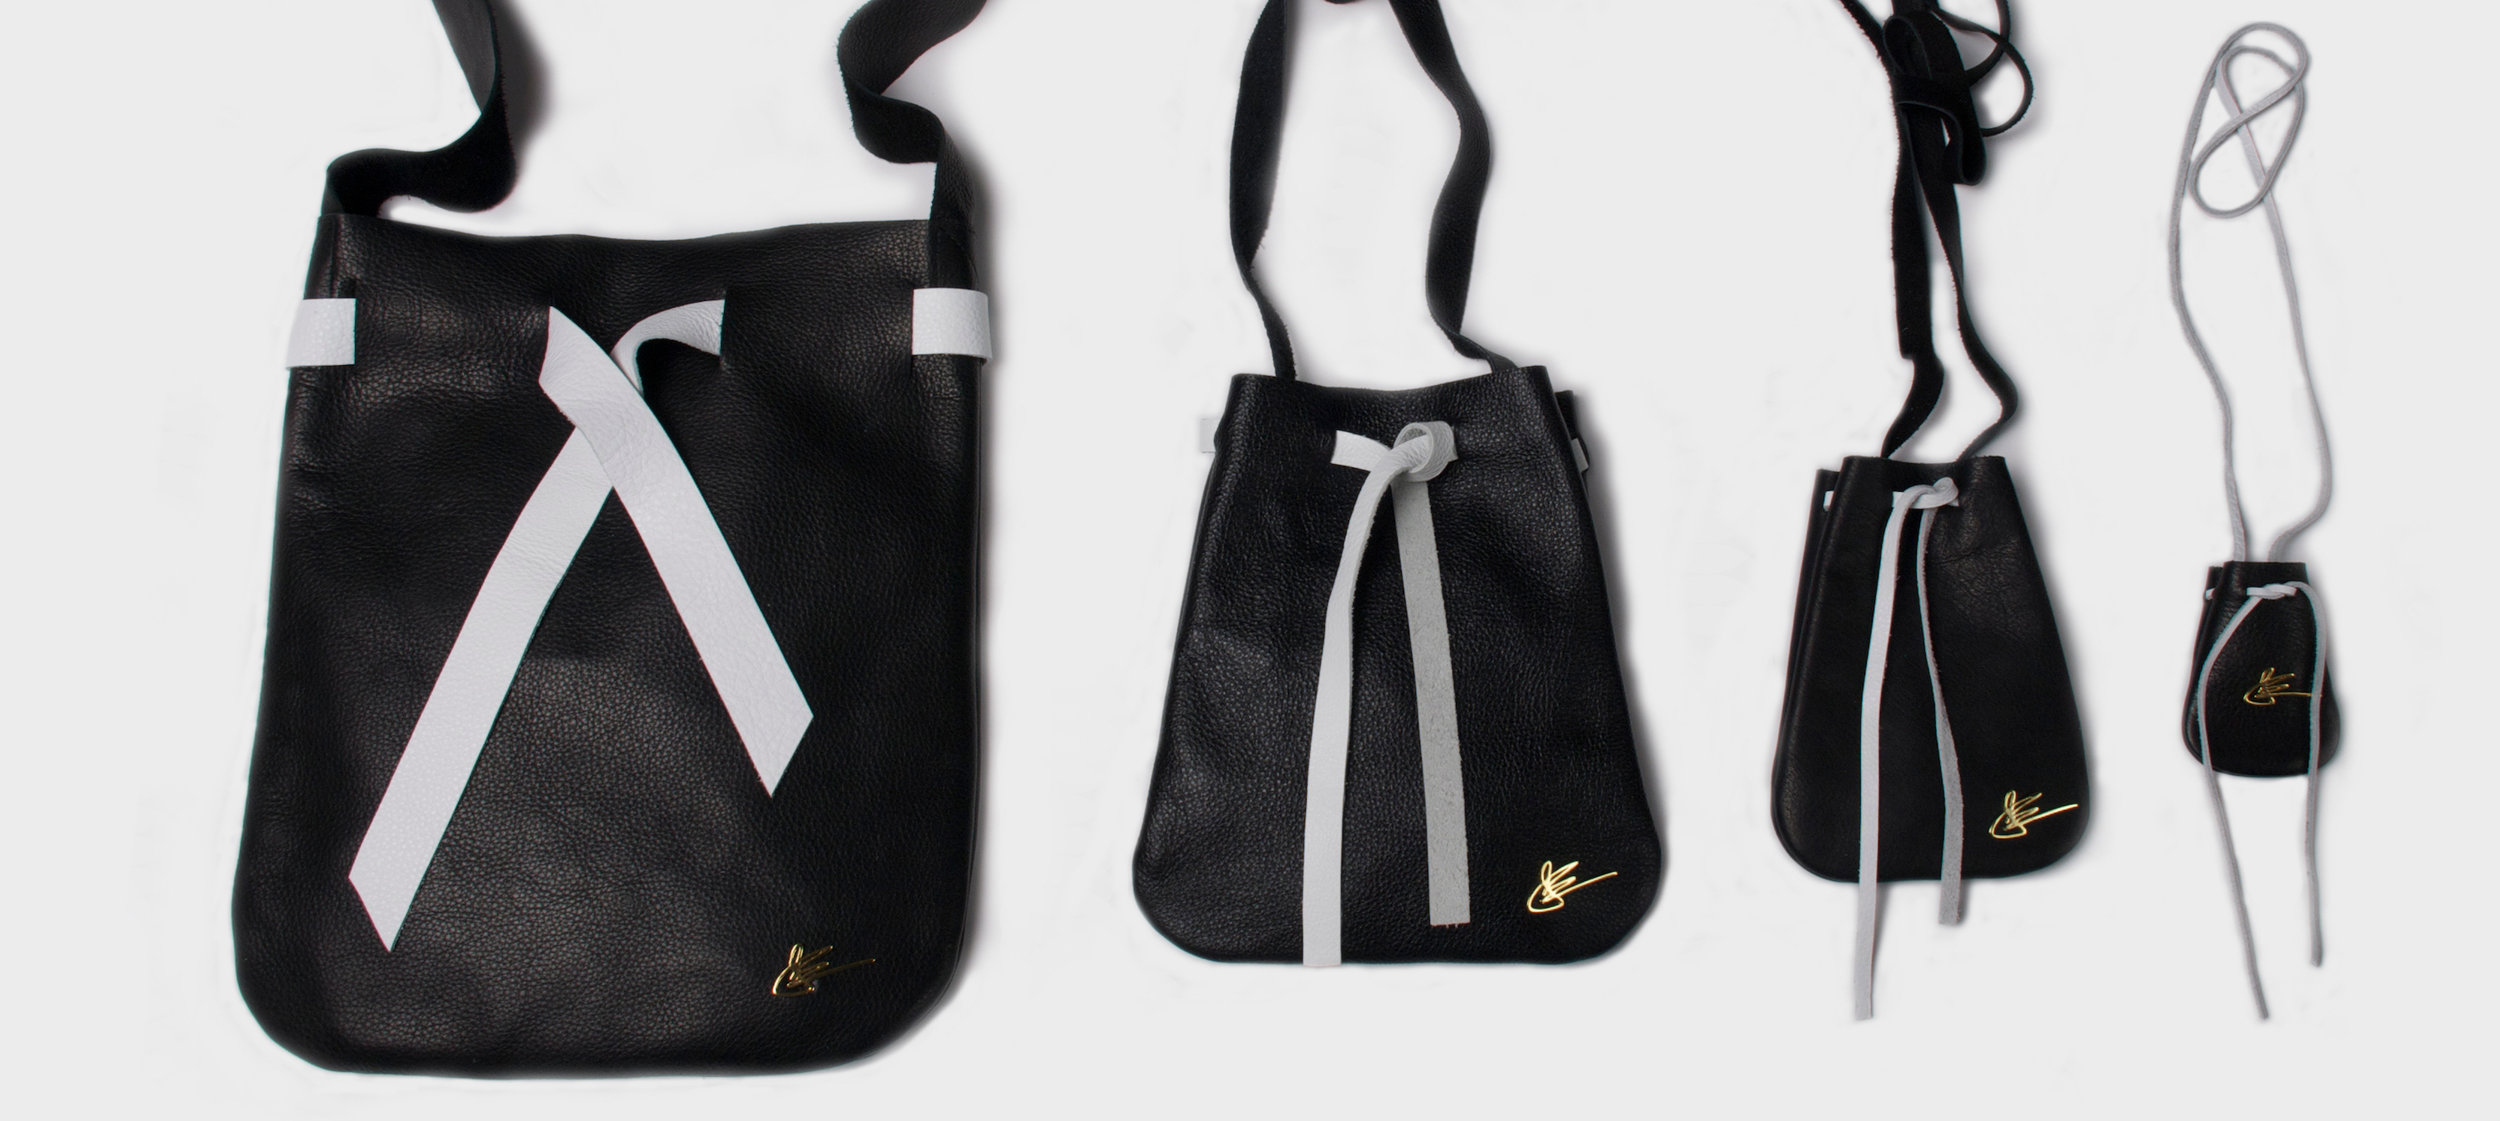 The Pouch Collection in Black and White  $1900.00